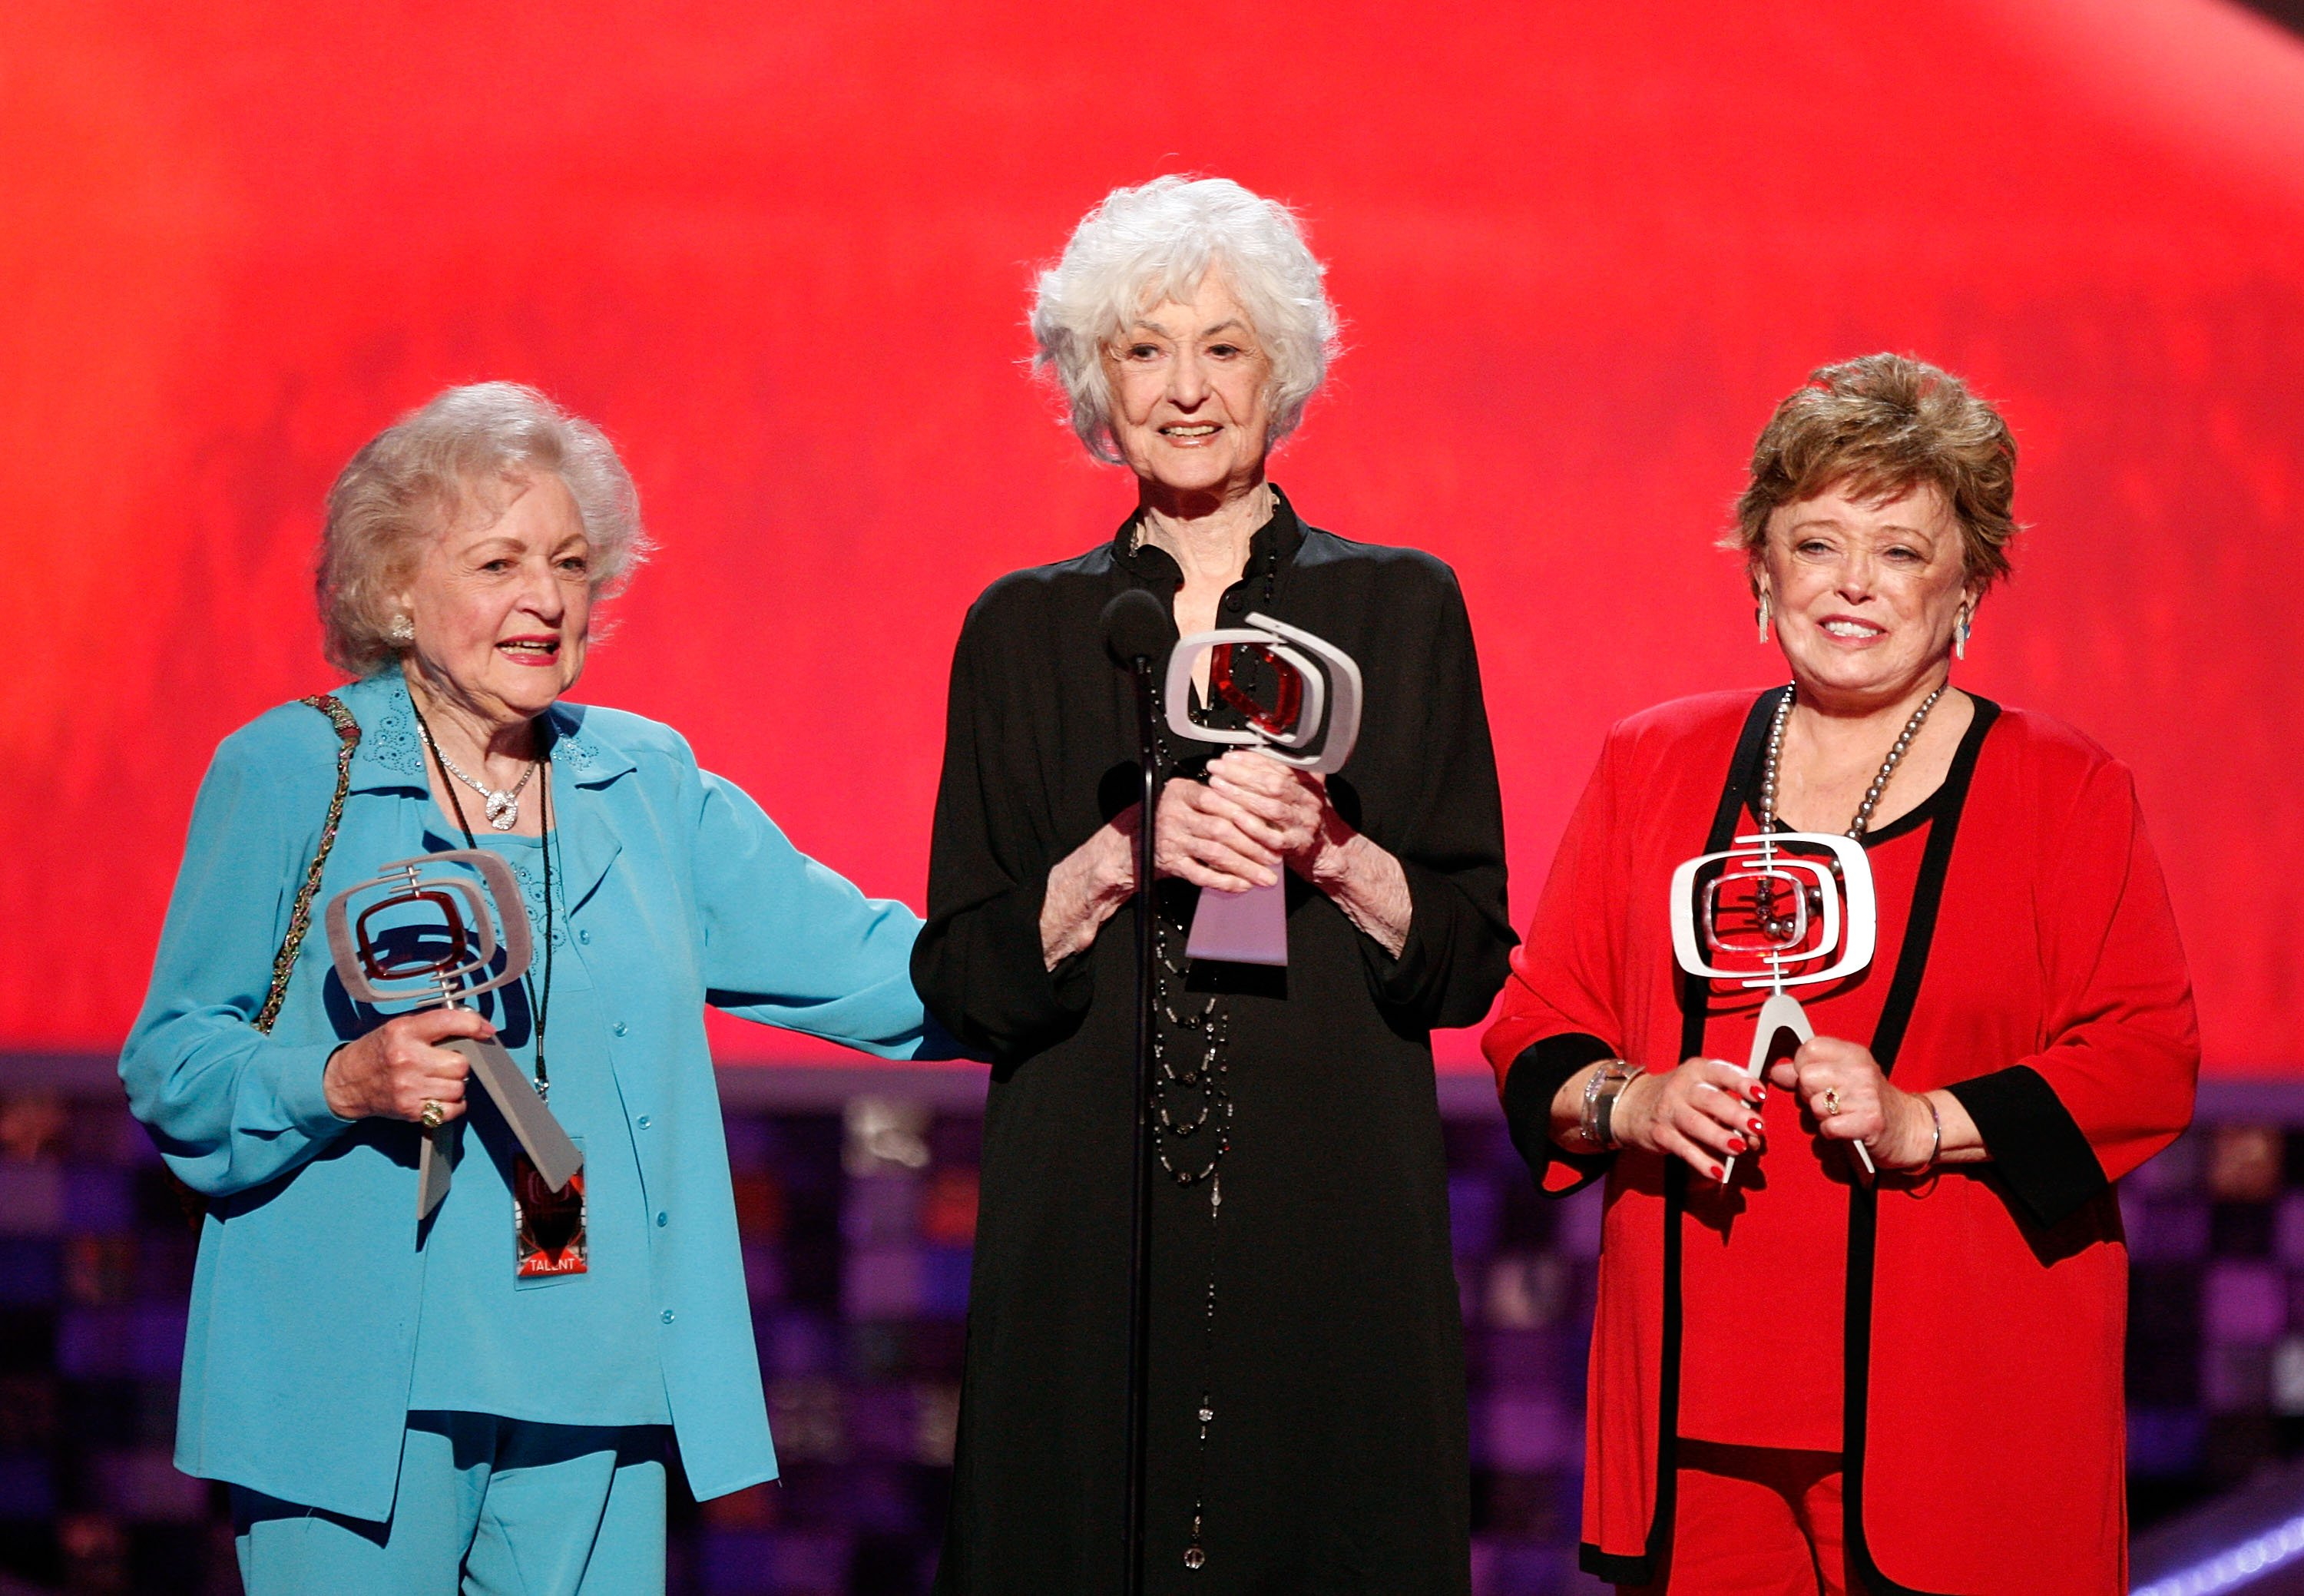 Betty White, Bea Arthur, and Rue McClanahan received the Pop Culture Award at the TV Land Awards in Santa Monica, California on June 8, 2008 | Photo: Getty Images